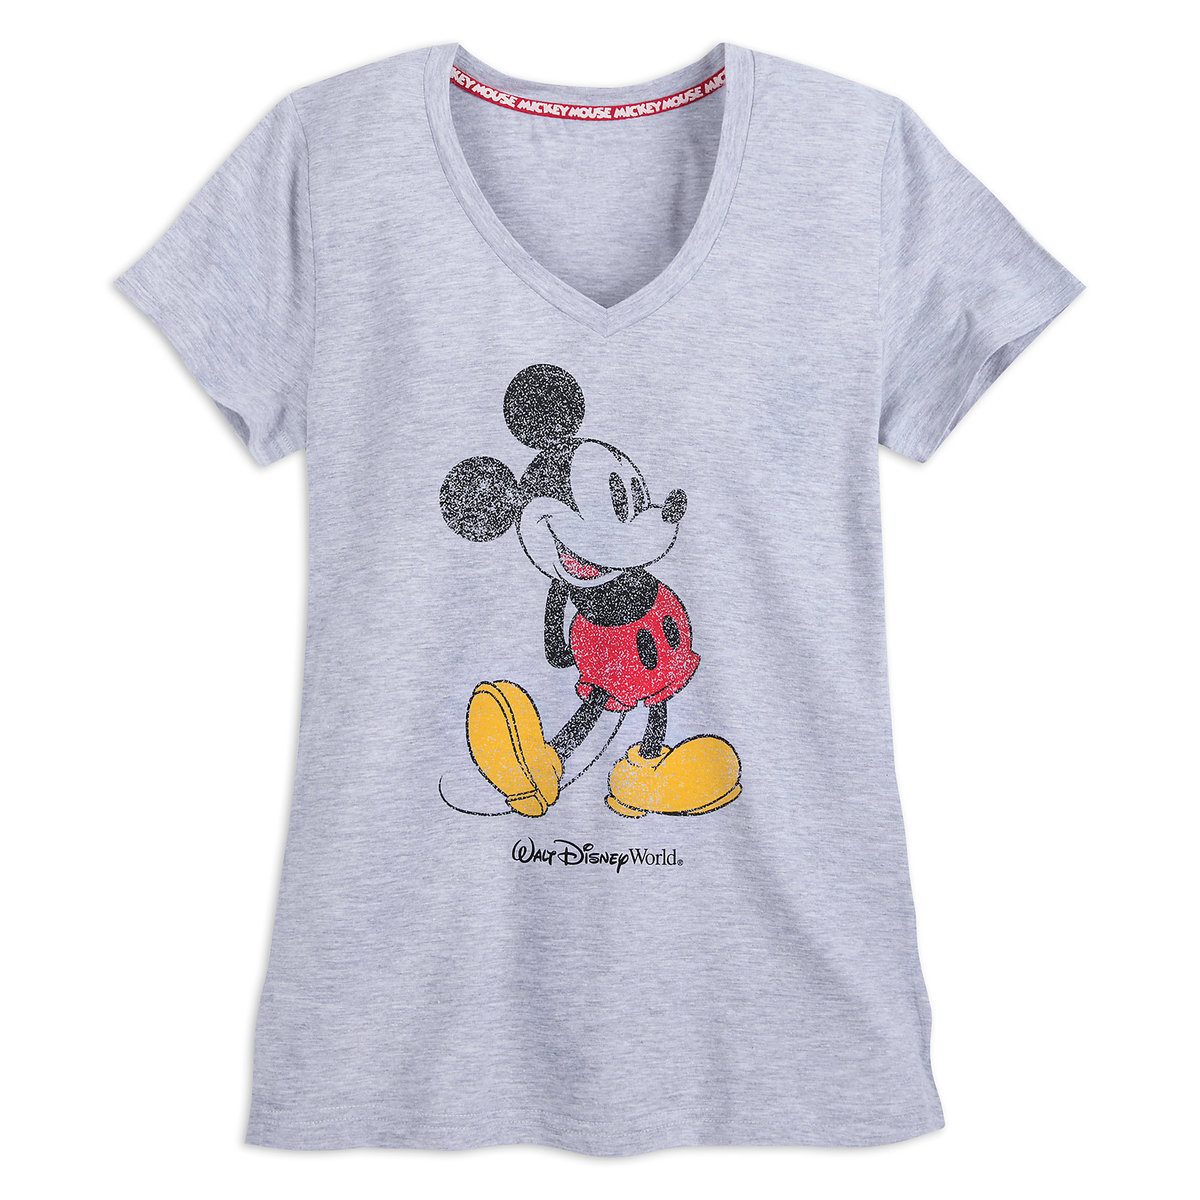 17bcfcbc9 Product Image of Mickey Mouse Classic T-Shirt for Women - Walt Disney World  -